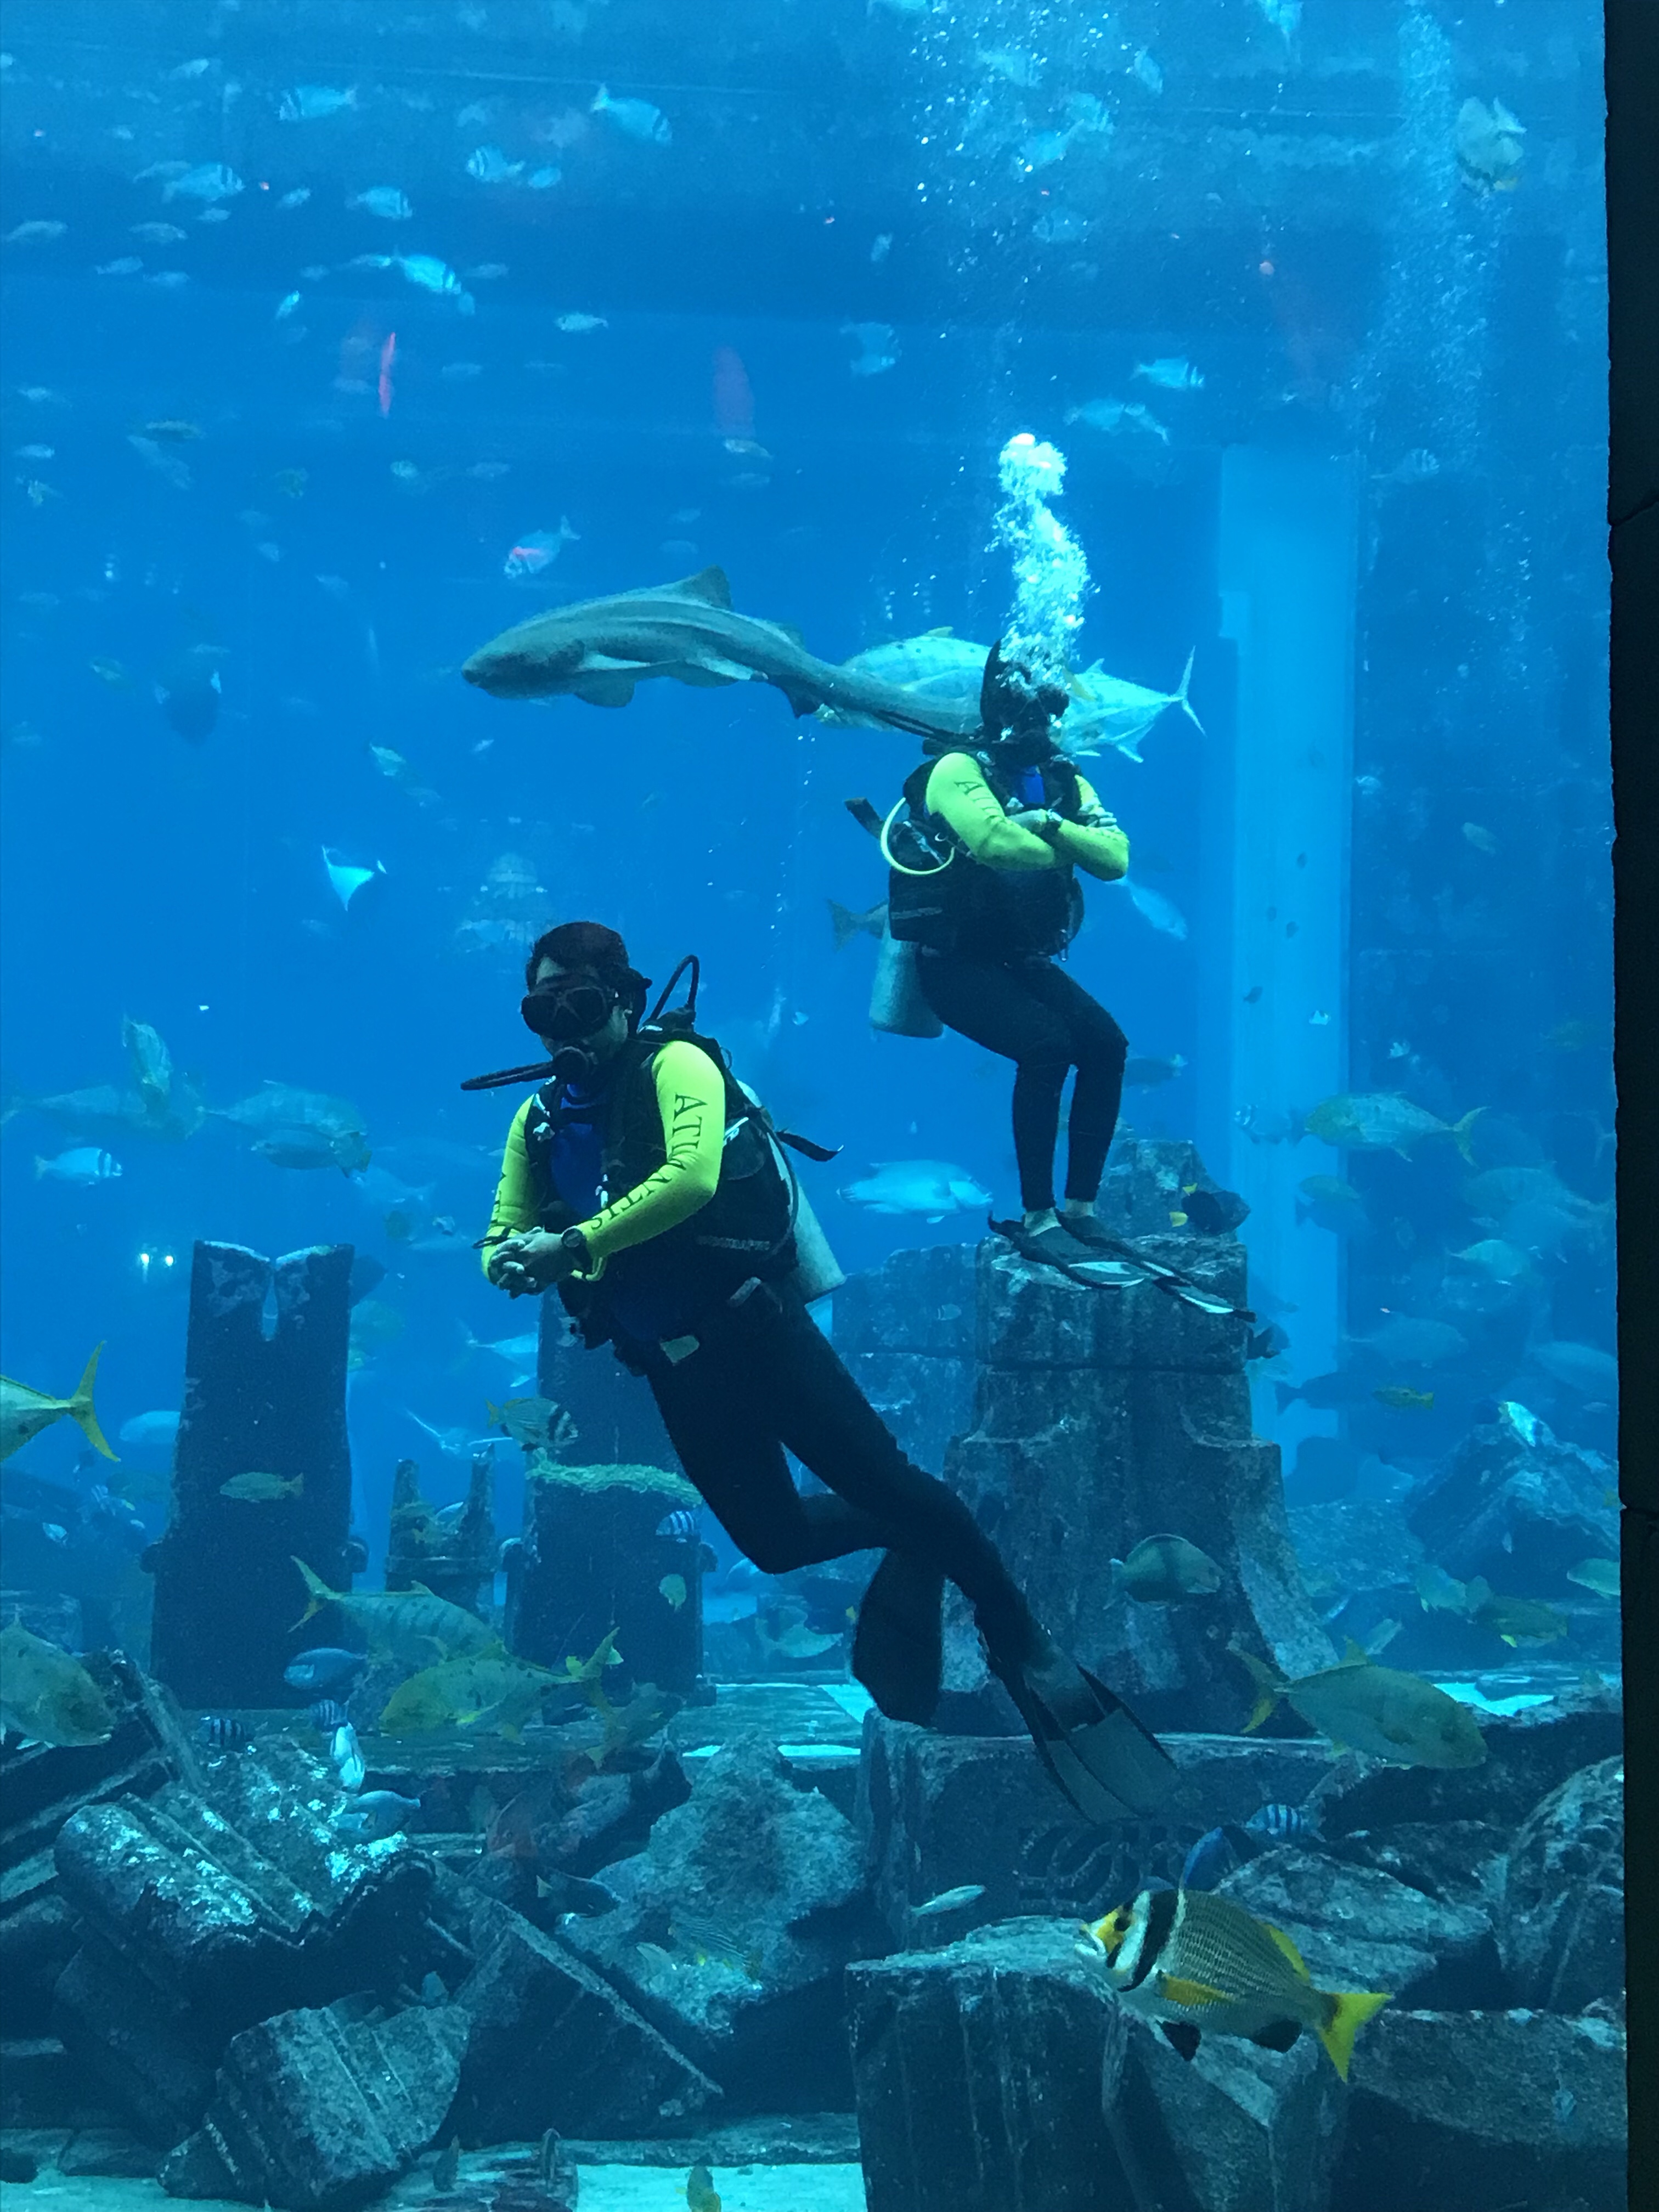 The Lost City of Atlantis aquarium